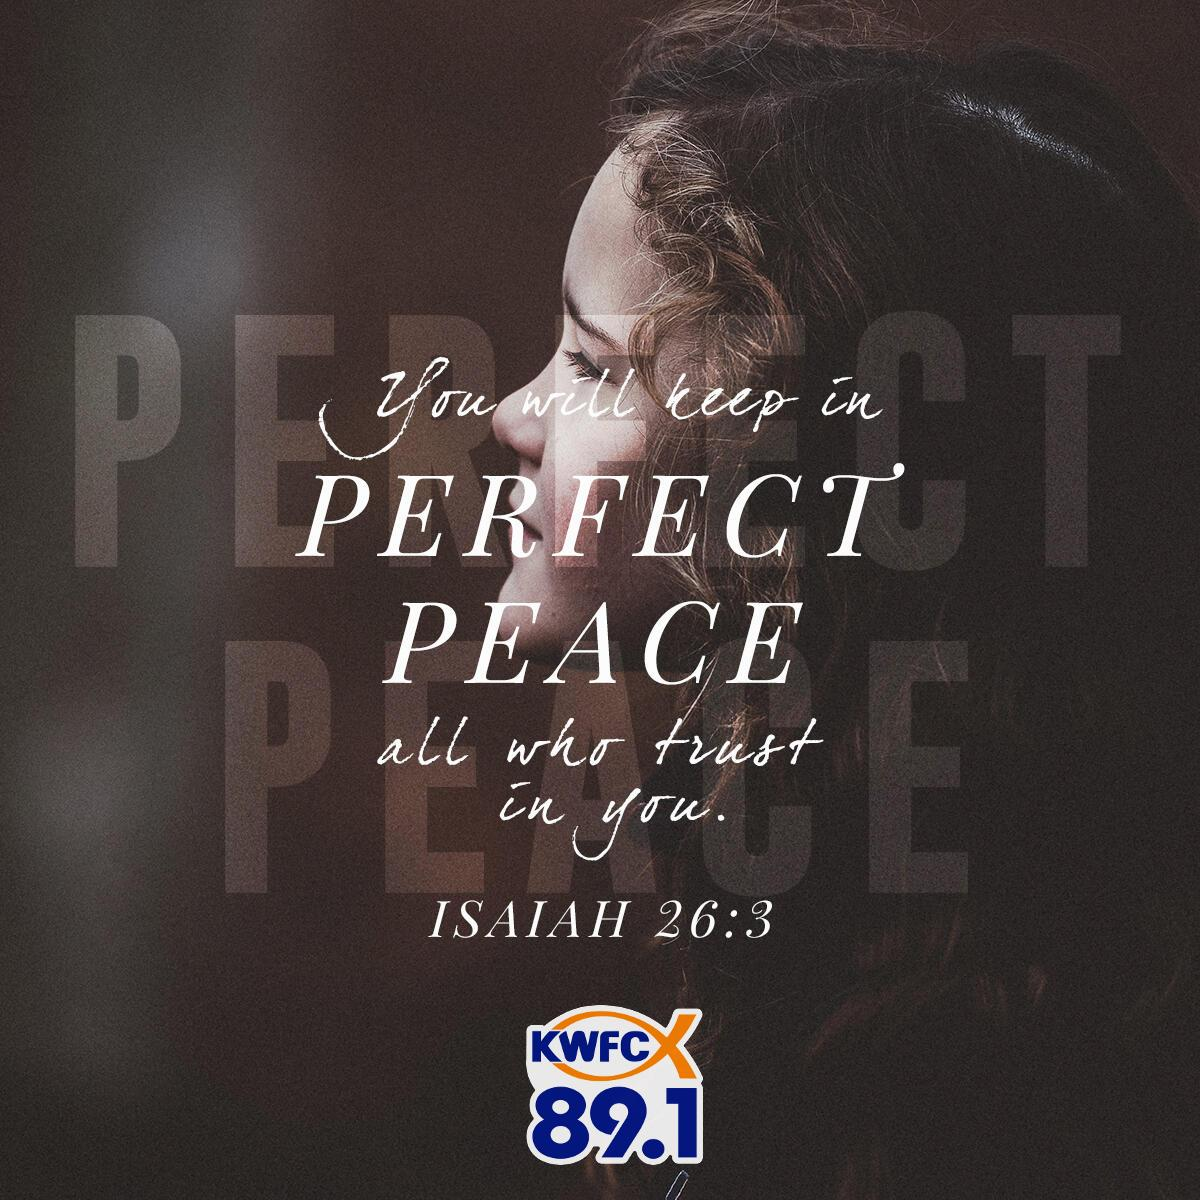 Isaiah 26:3 - Verse of the Day